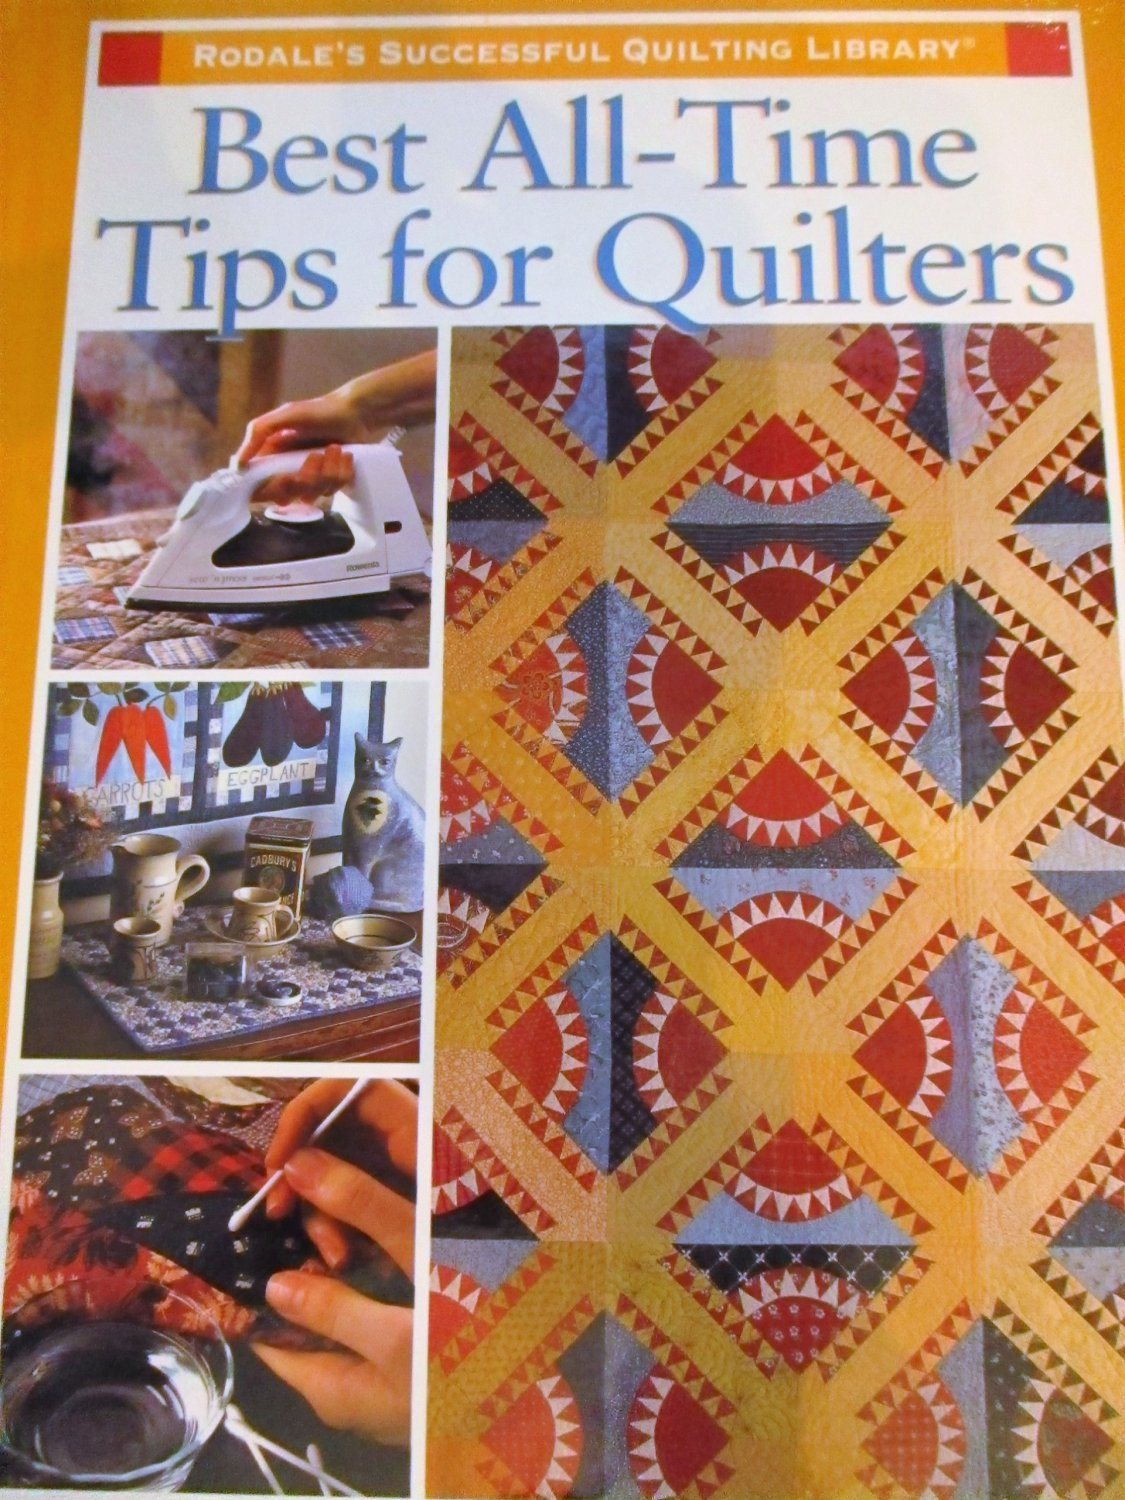 Rodeles Quilting Library best all time tips for quilters